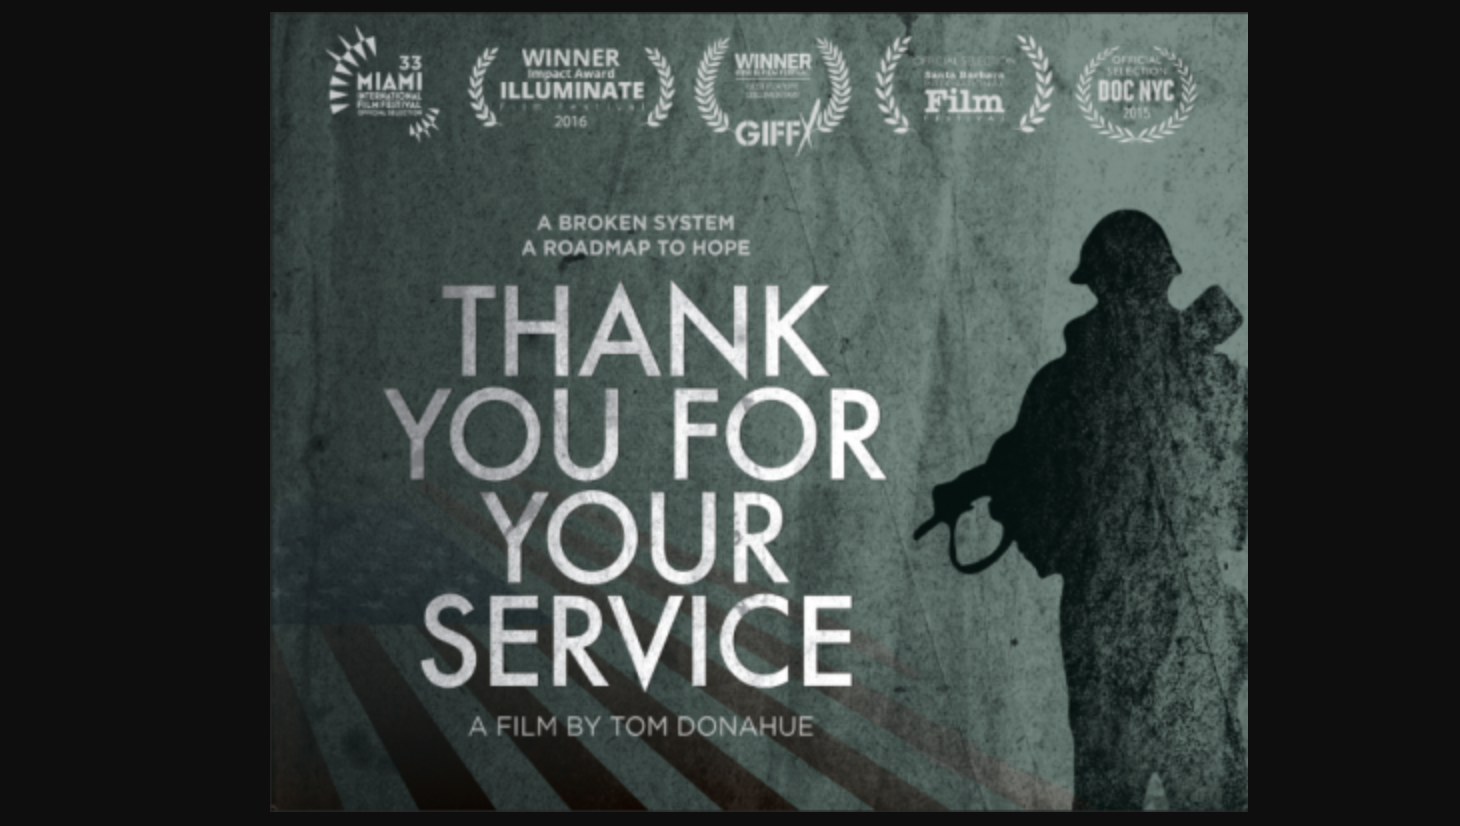 Thank You For Your Service Film: FREE Admission for Military in Uniform title=